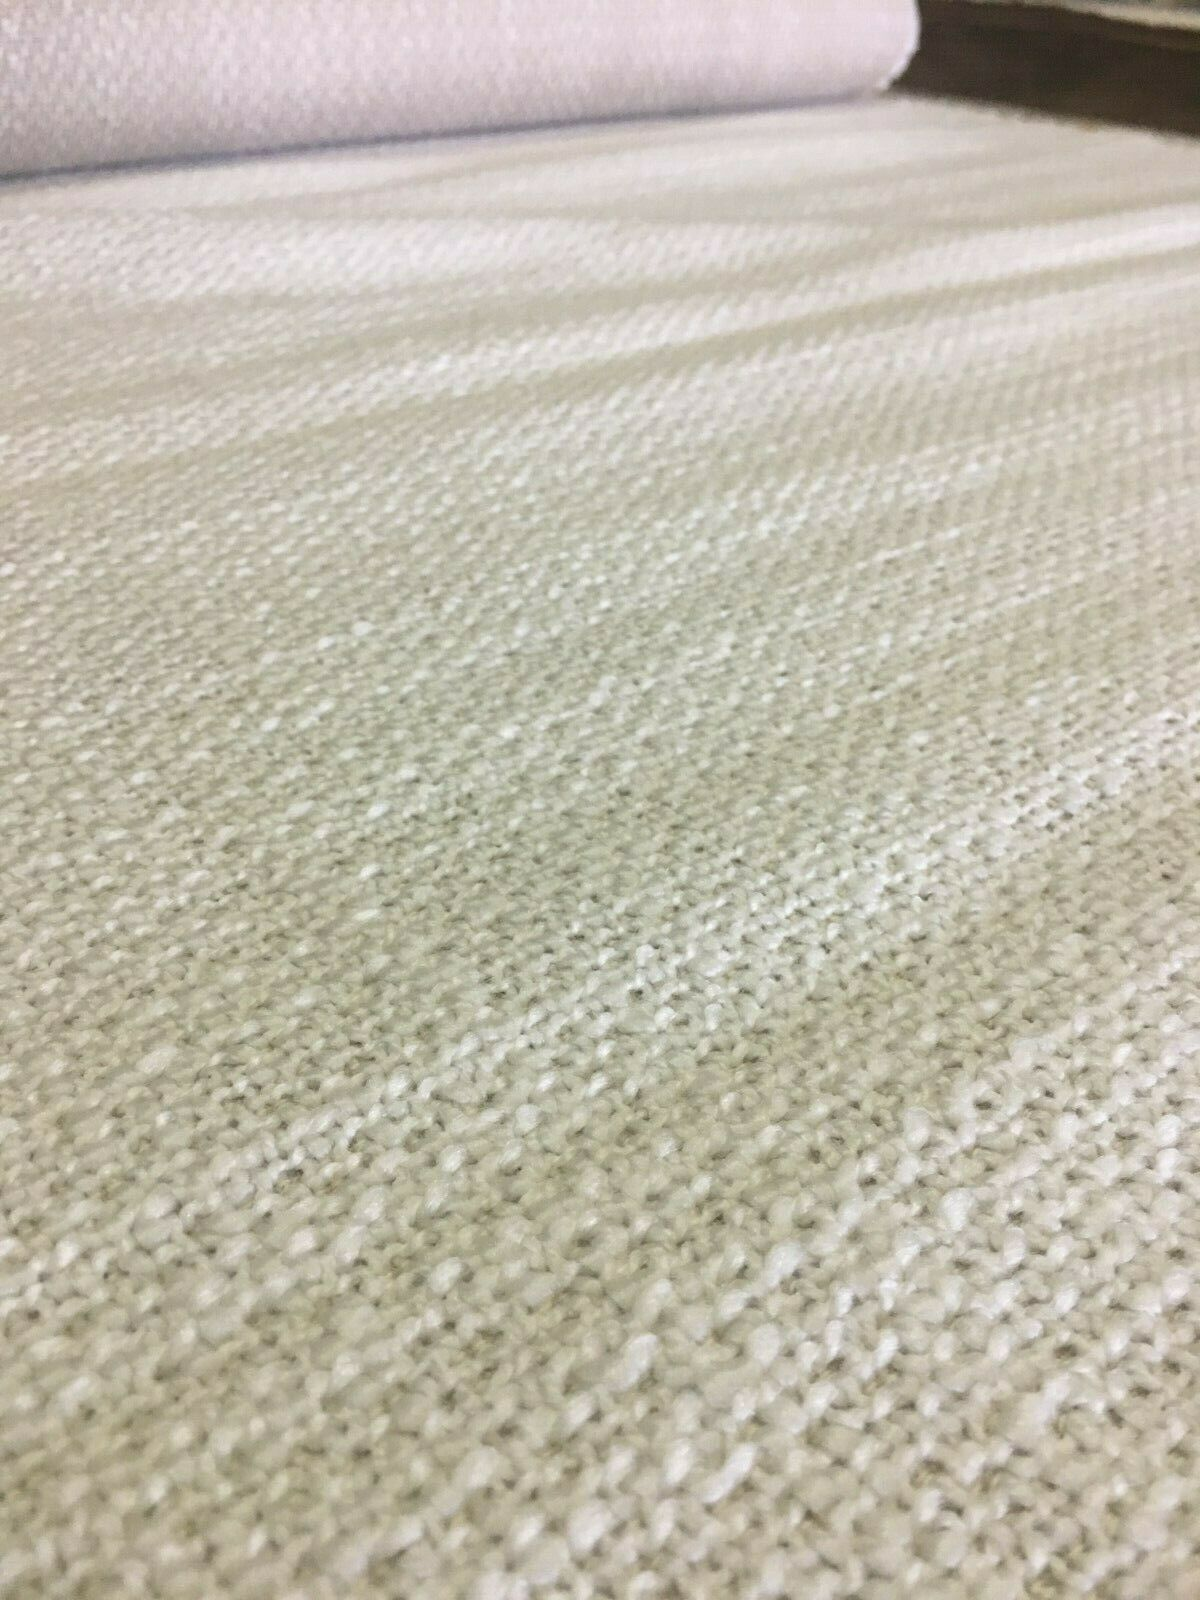 Mid Century Nubby Texture Upholstery Fabric White 2.5 yards TQ